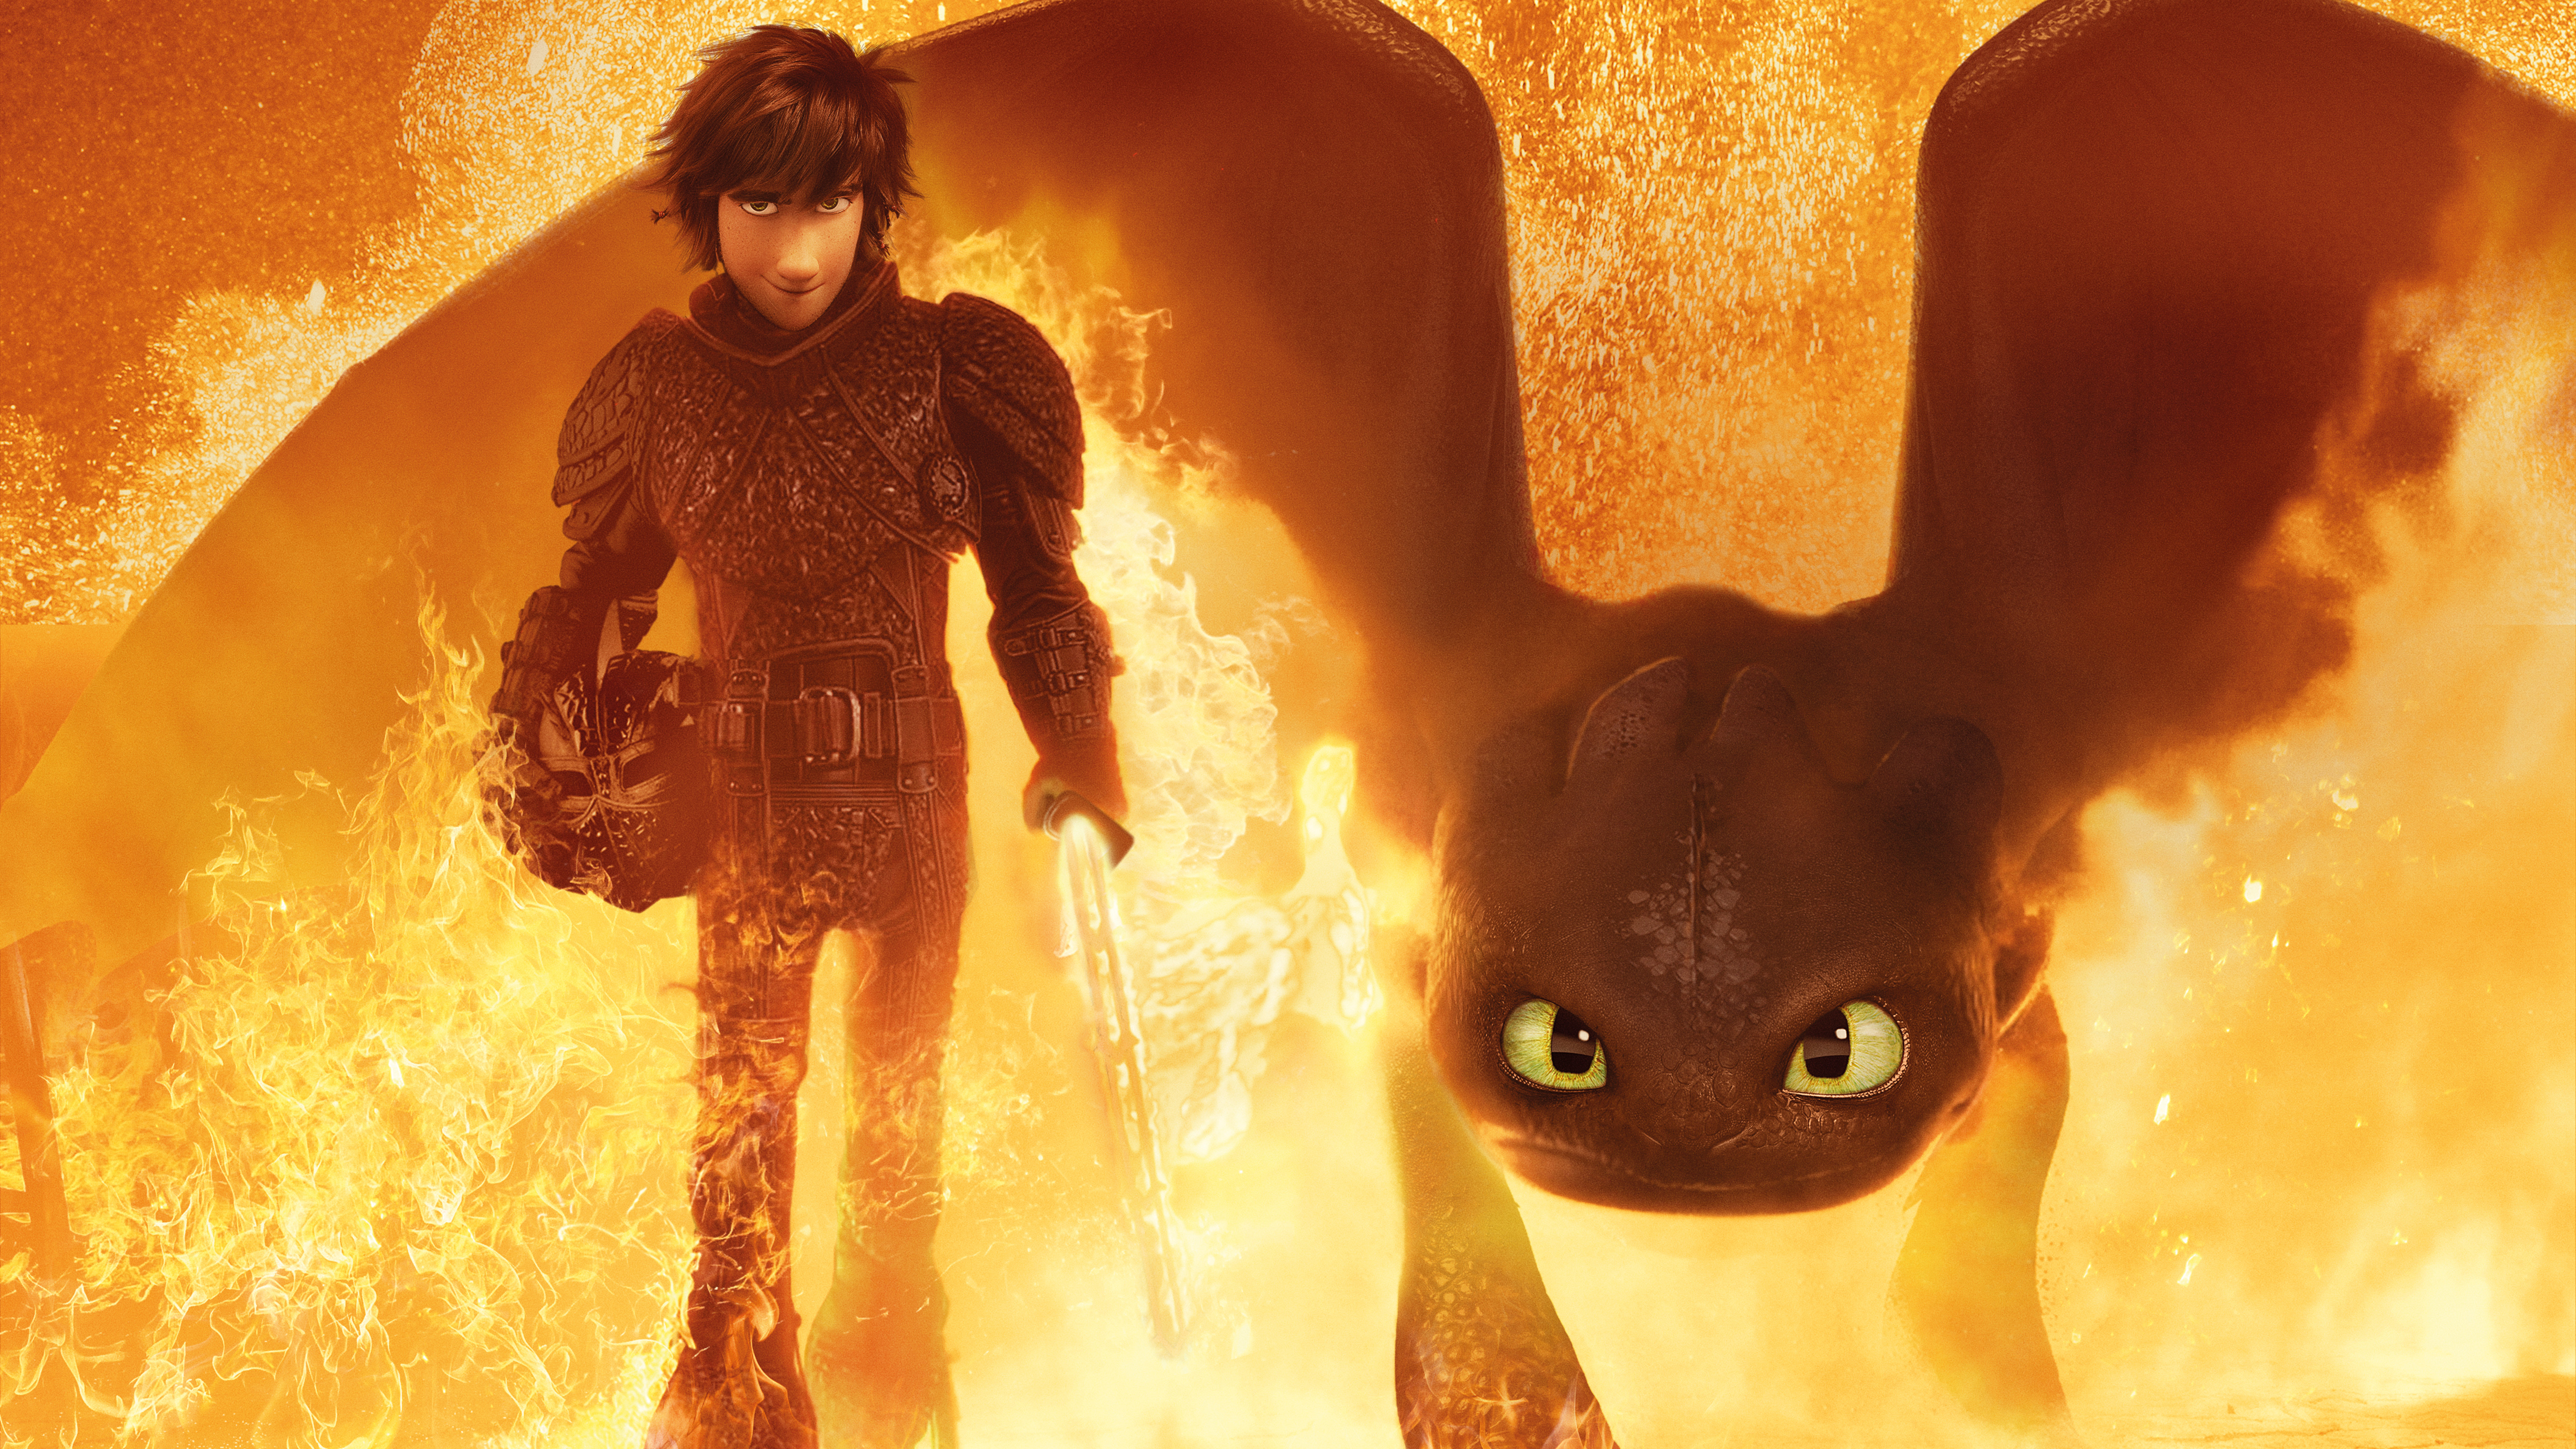 Hiccup Toothless How To Train Your Dragon 3 4k 5k Wallpapers Hd Wallpapers